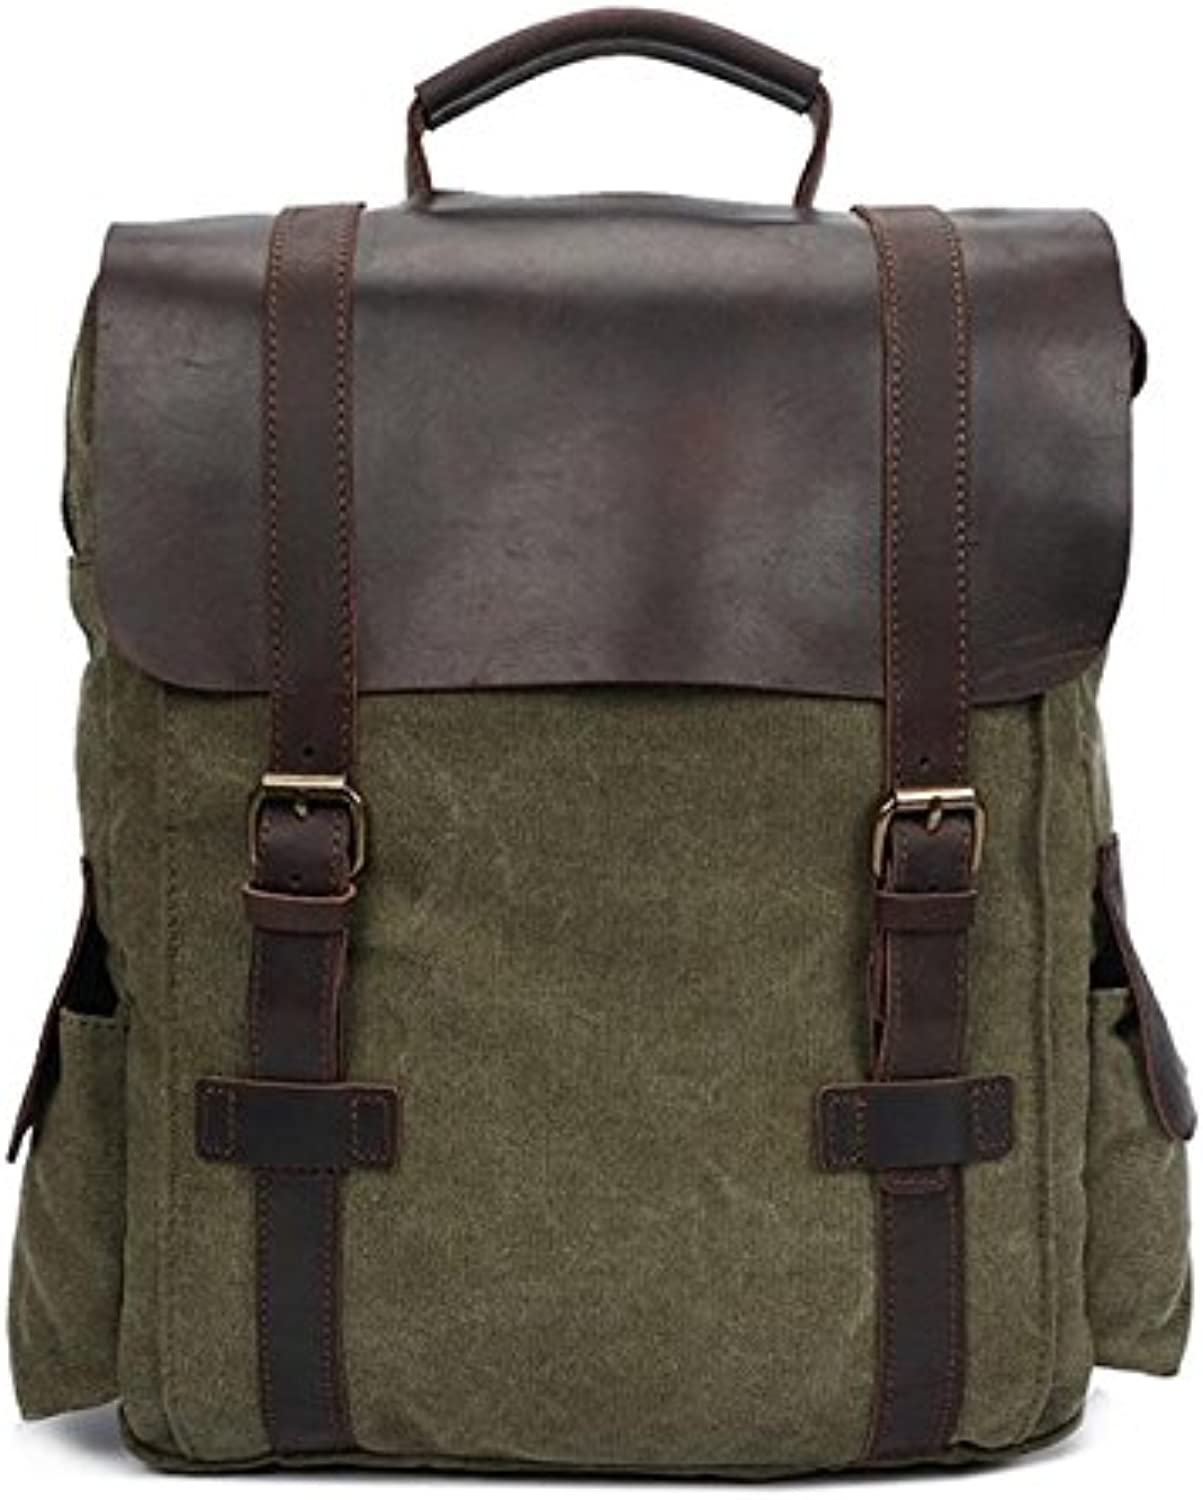 ZHANGOR Vintage Canvas With Leather Backpack, Notebook Backpack School Travel Hiking Backpack, Male And Femalezhanfor,Green